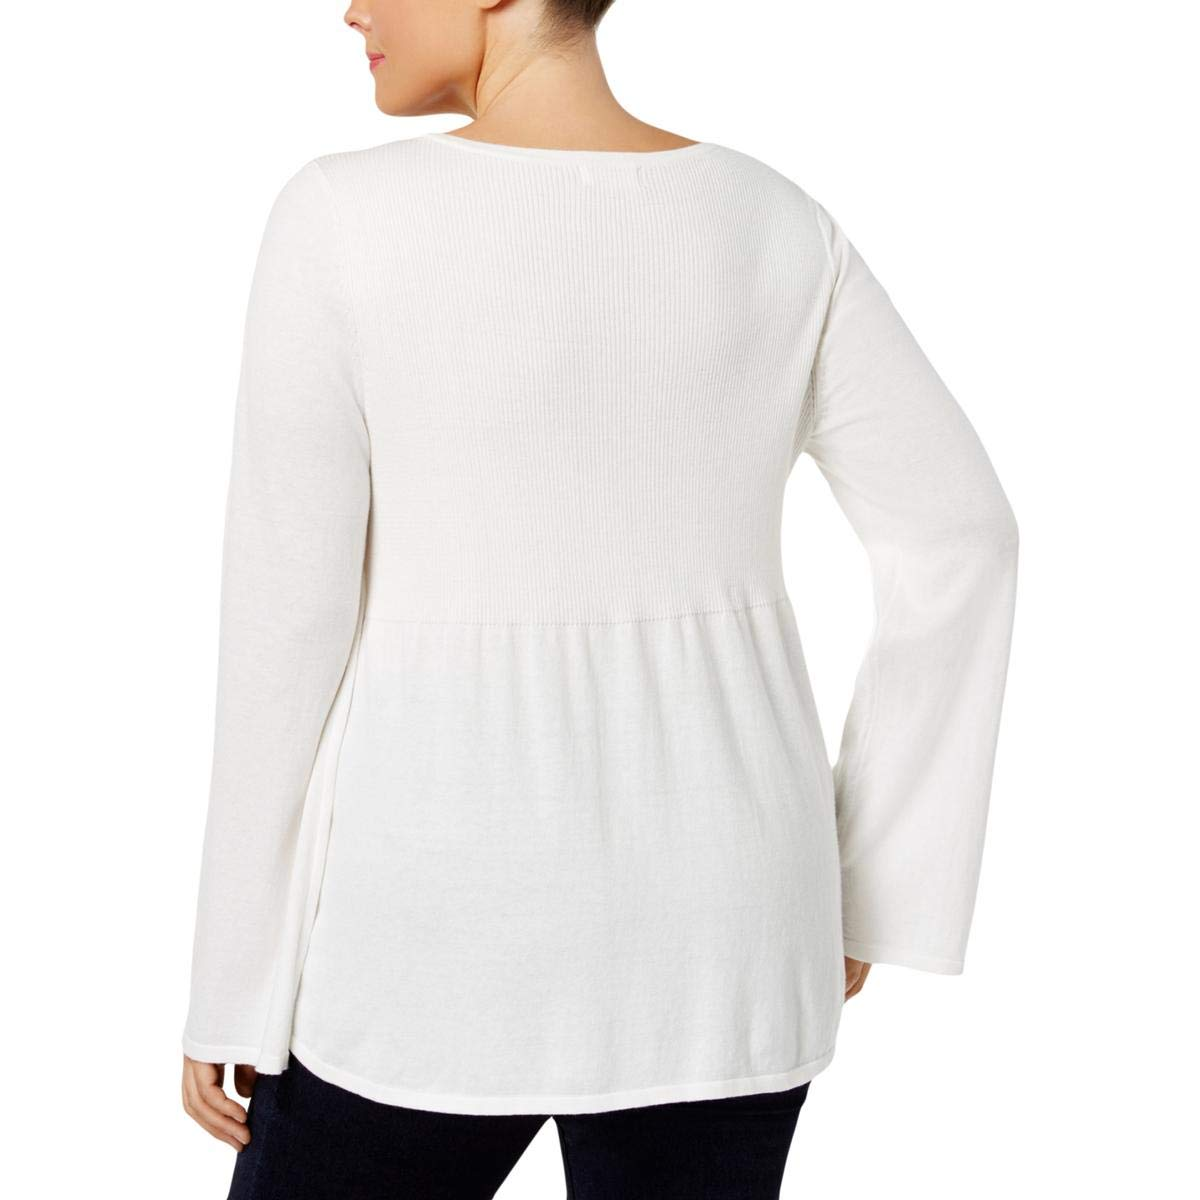 b4e87d728d6 Amazon.com  Style   Co. Womens Plus Lace Trim Babydoll Pullover Sweater  White 3X  Clothing